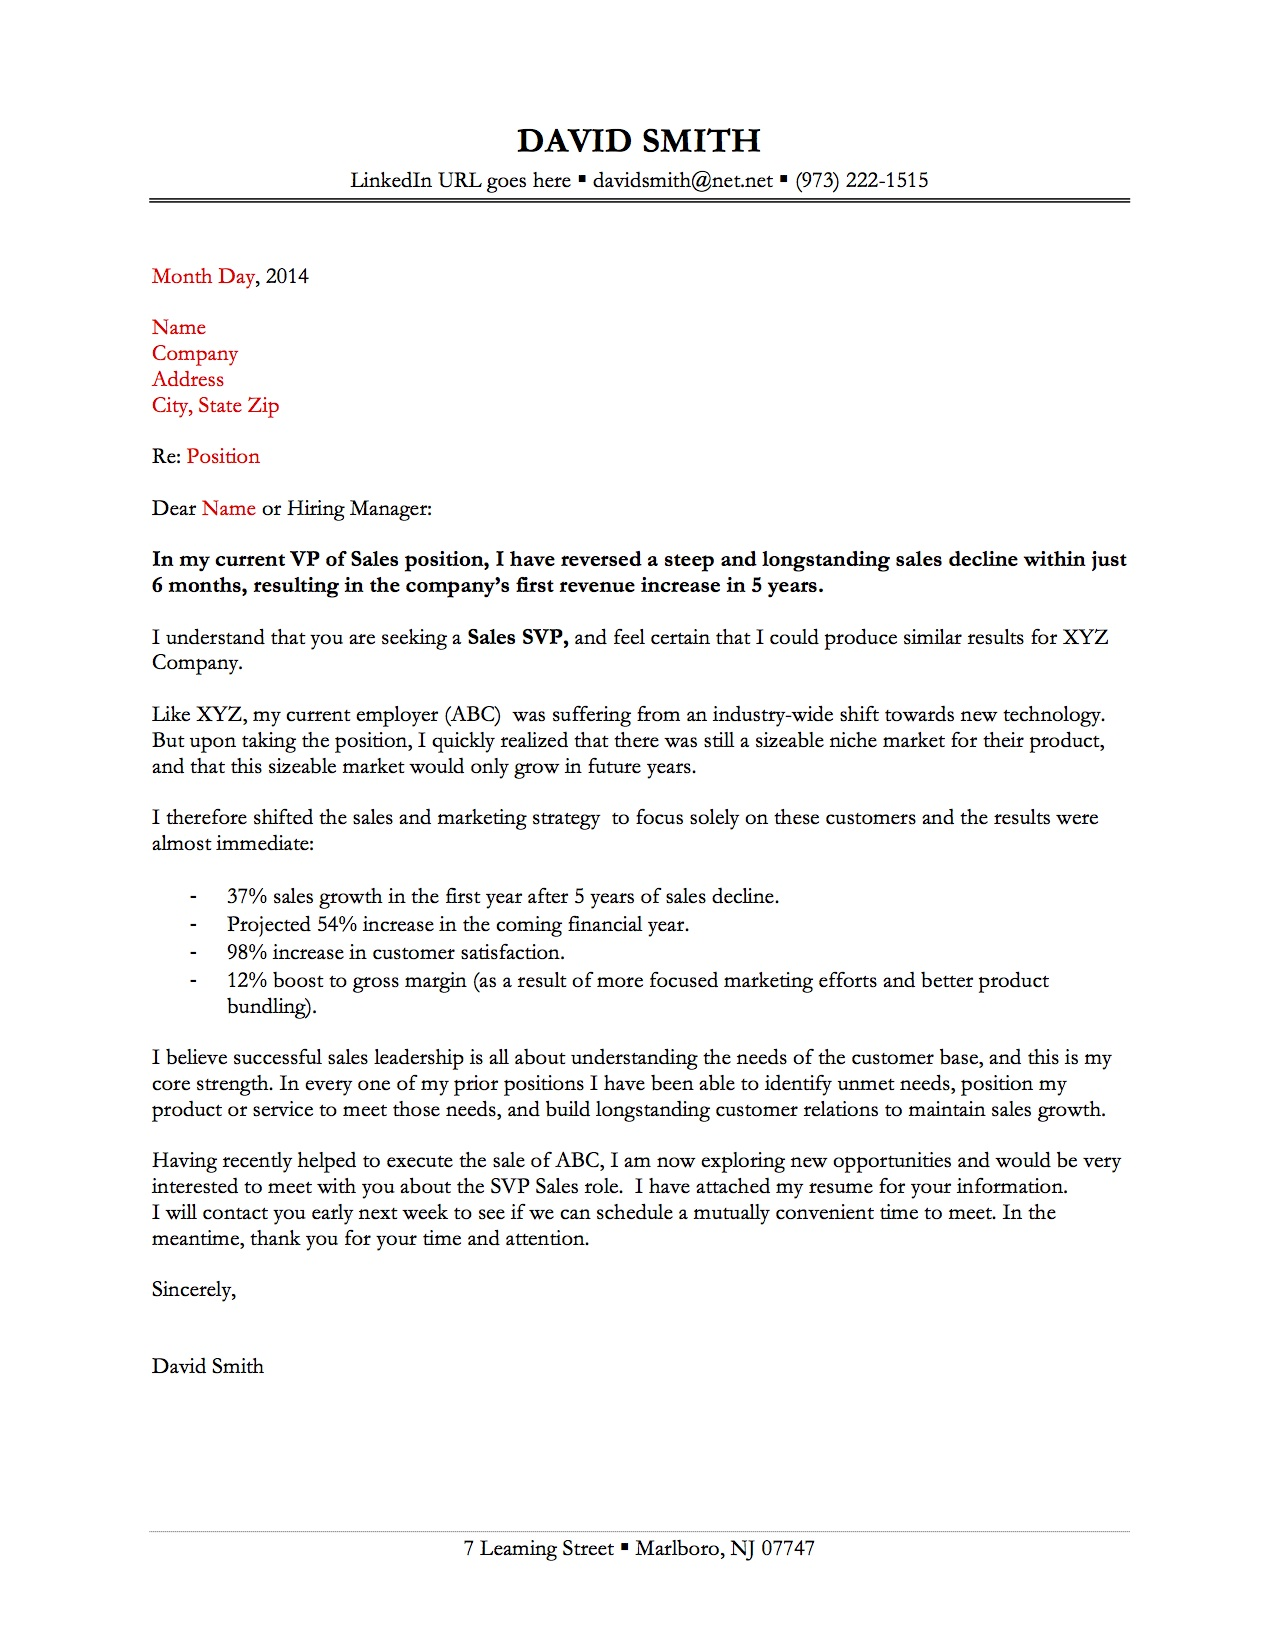 Sample Cover Letter 2  Sales And Marketing Cover Letter